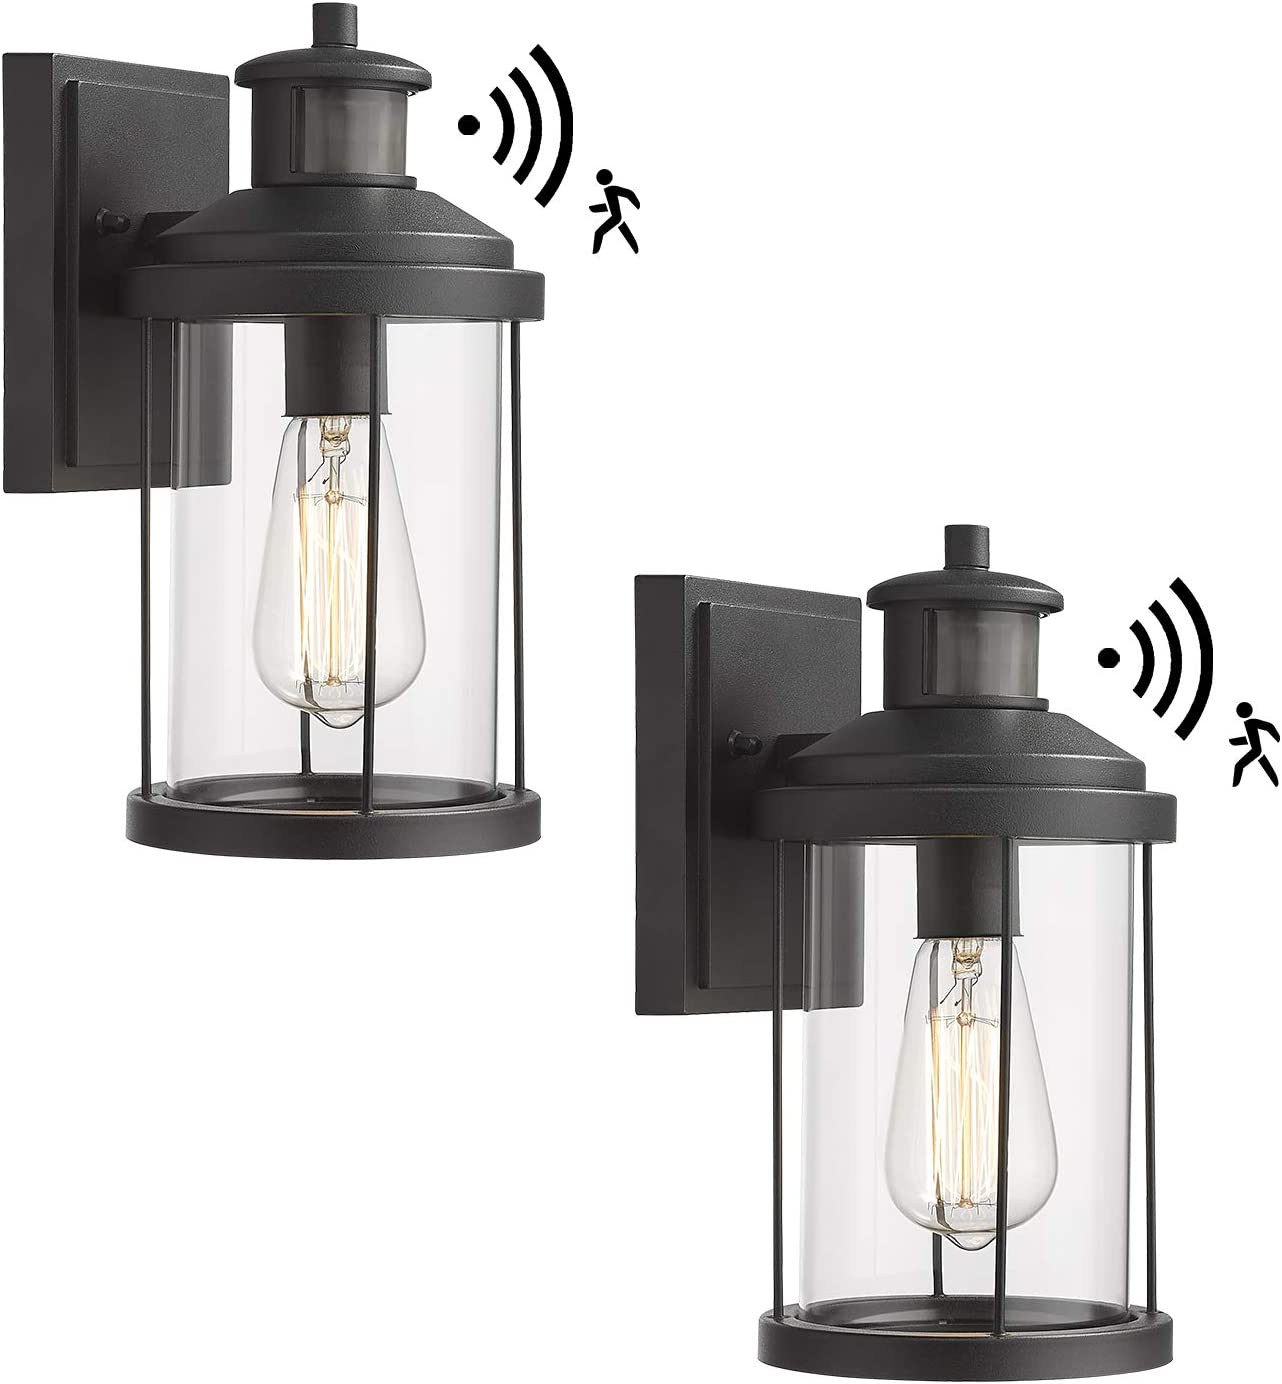 Bargain Zeyu Outdoor Wall Sconce with Motion Sensor Wal 2 Max 59% OFF Pack Exterior